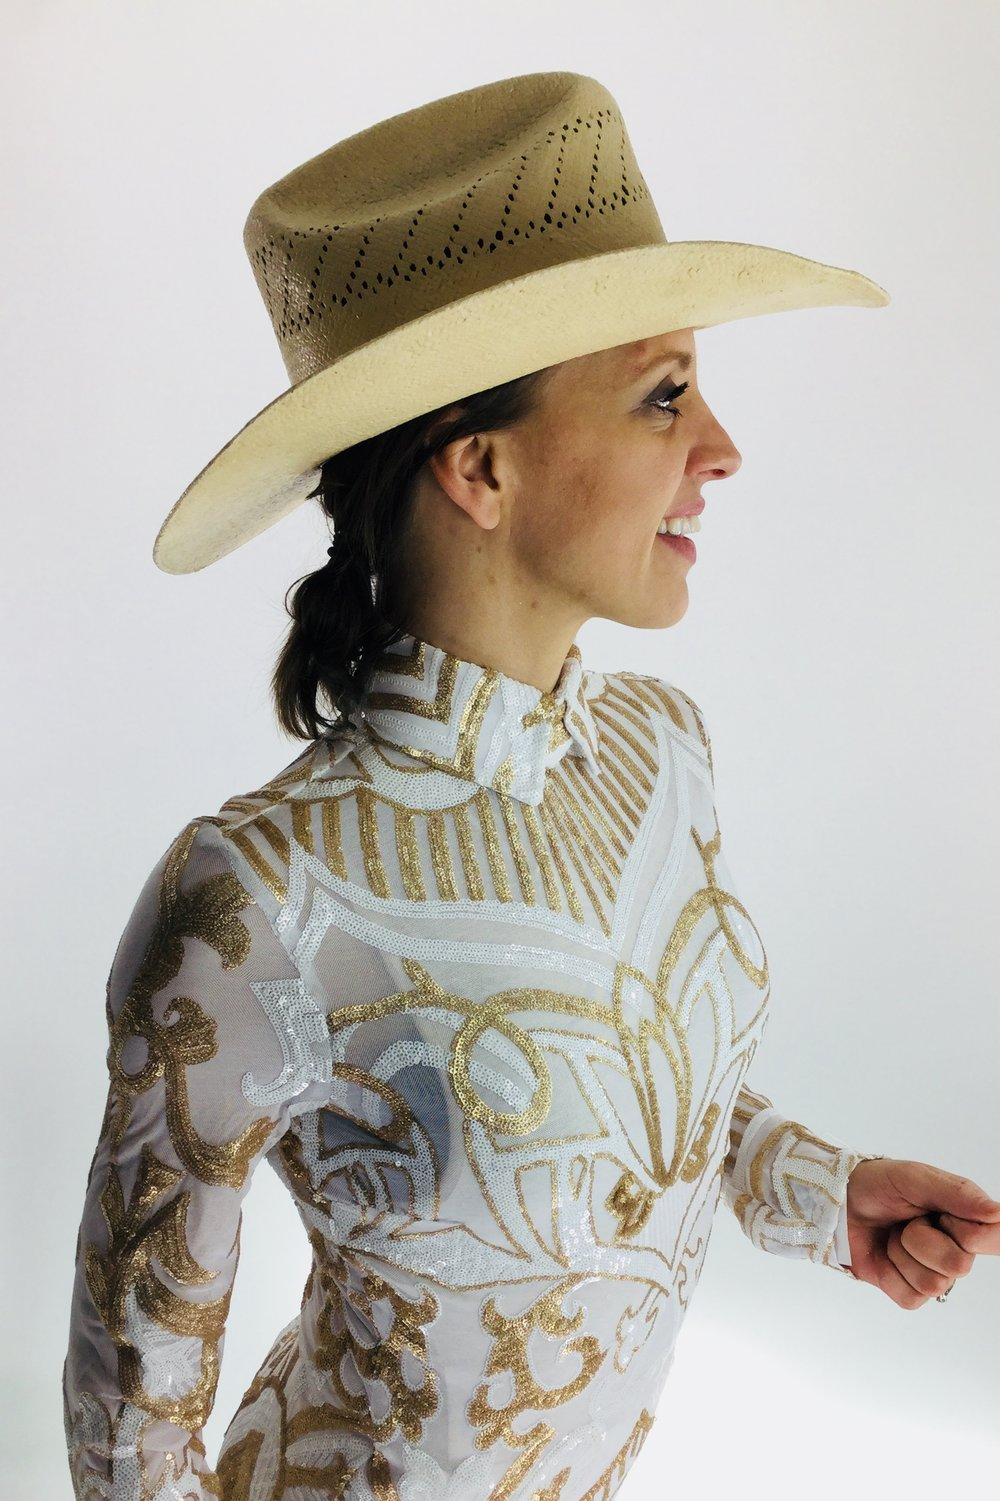 sparkle-ridge-western-show-clothes-white-and-gold-sequin-western-show-shirt-anita8.jpg